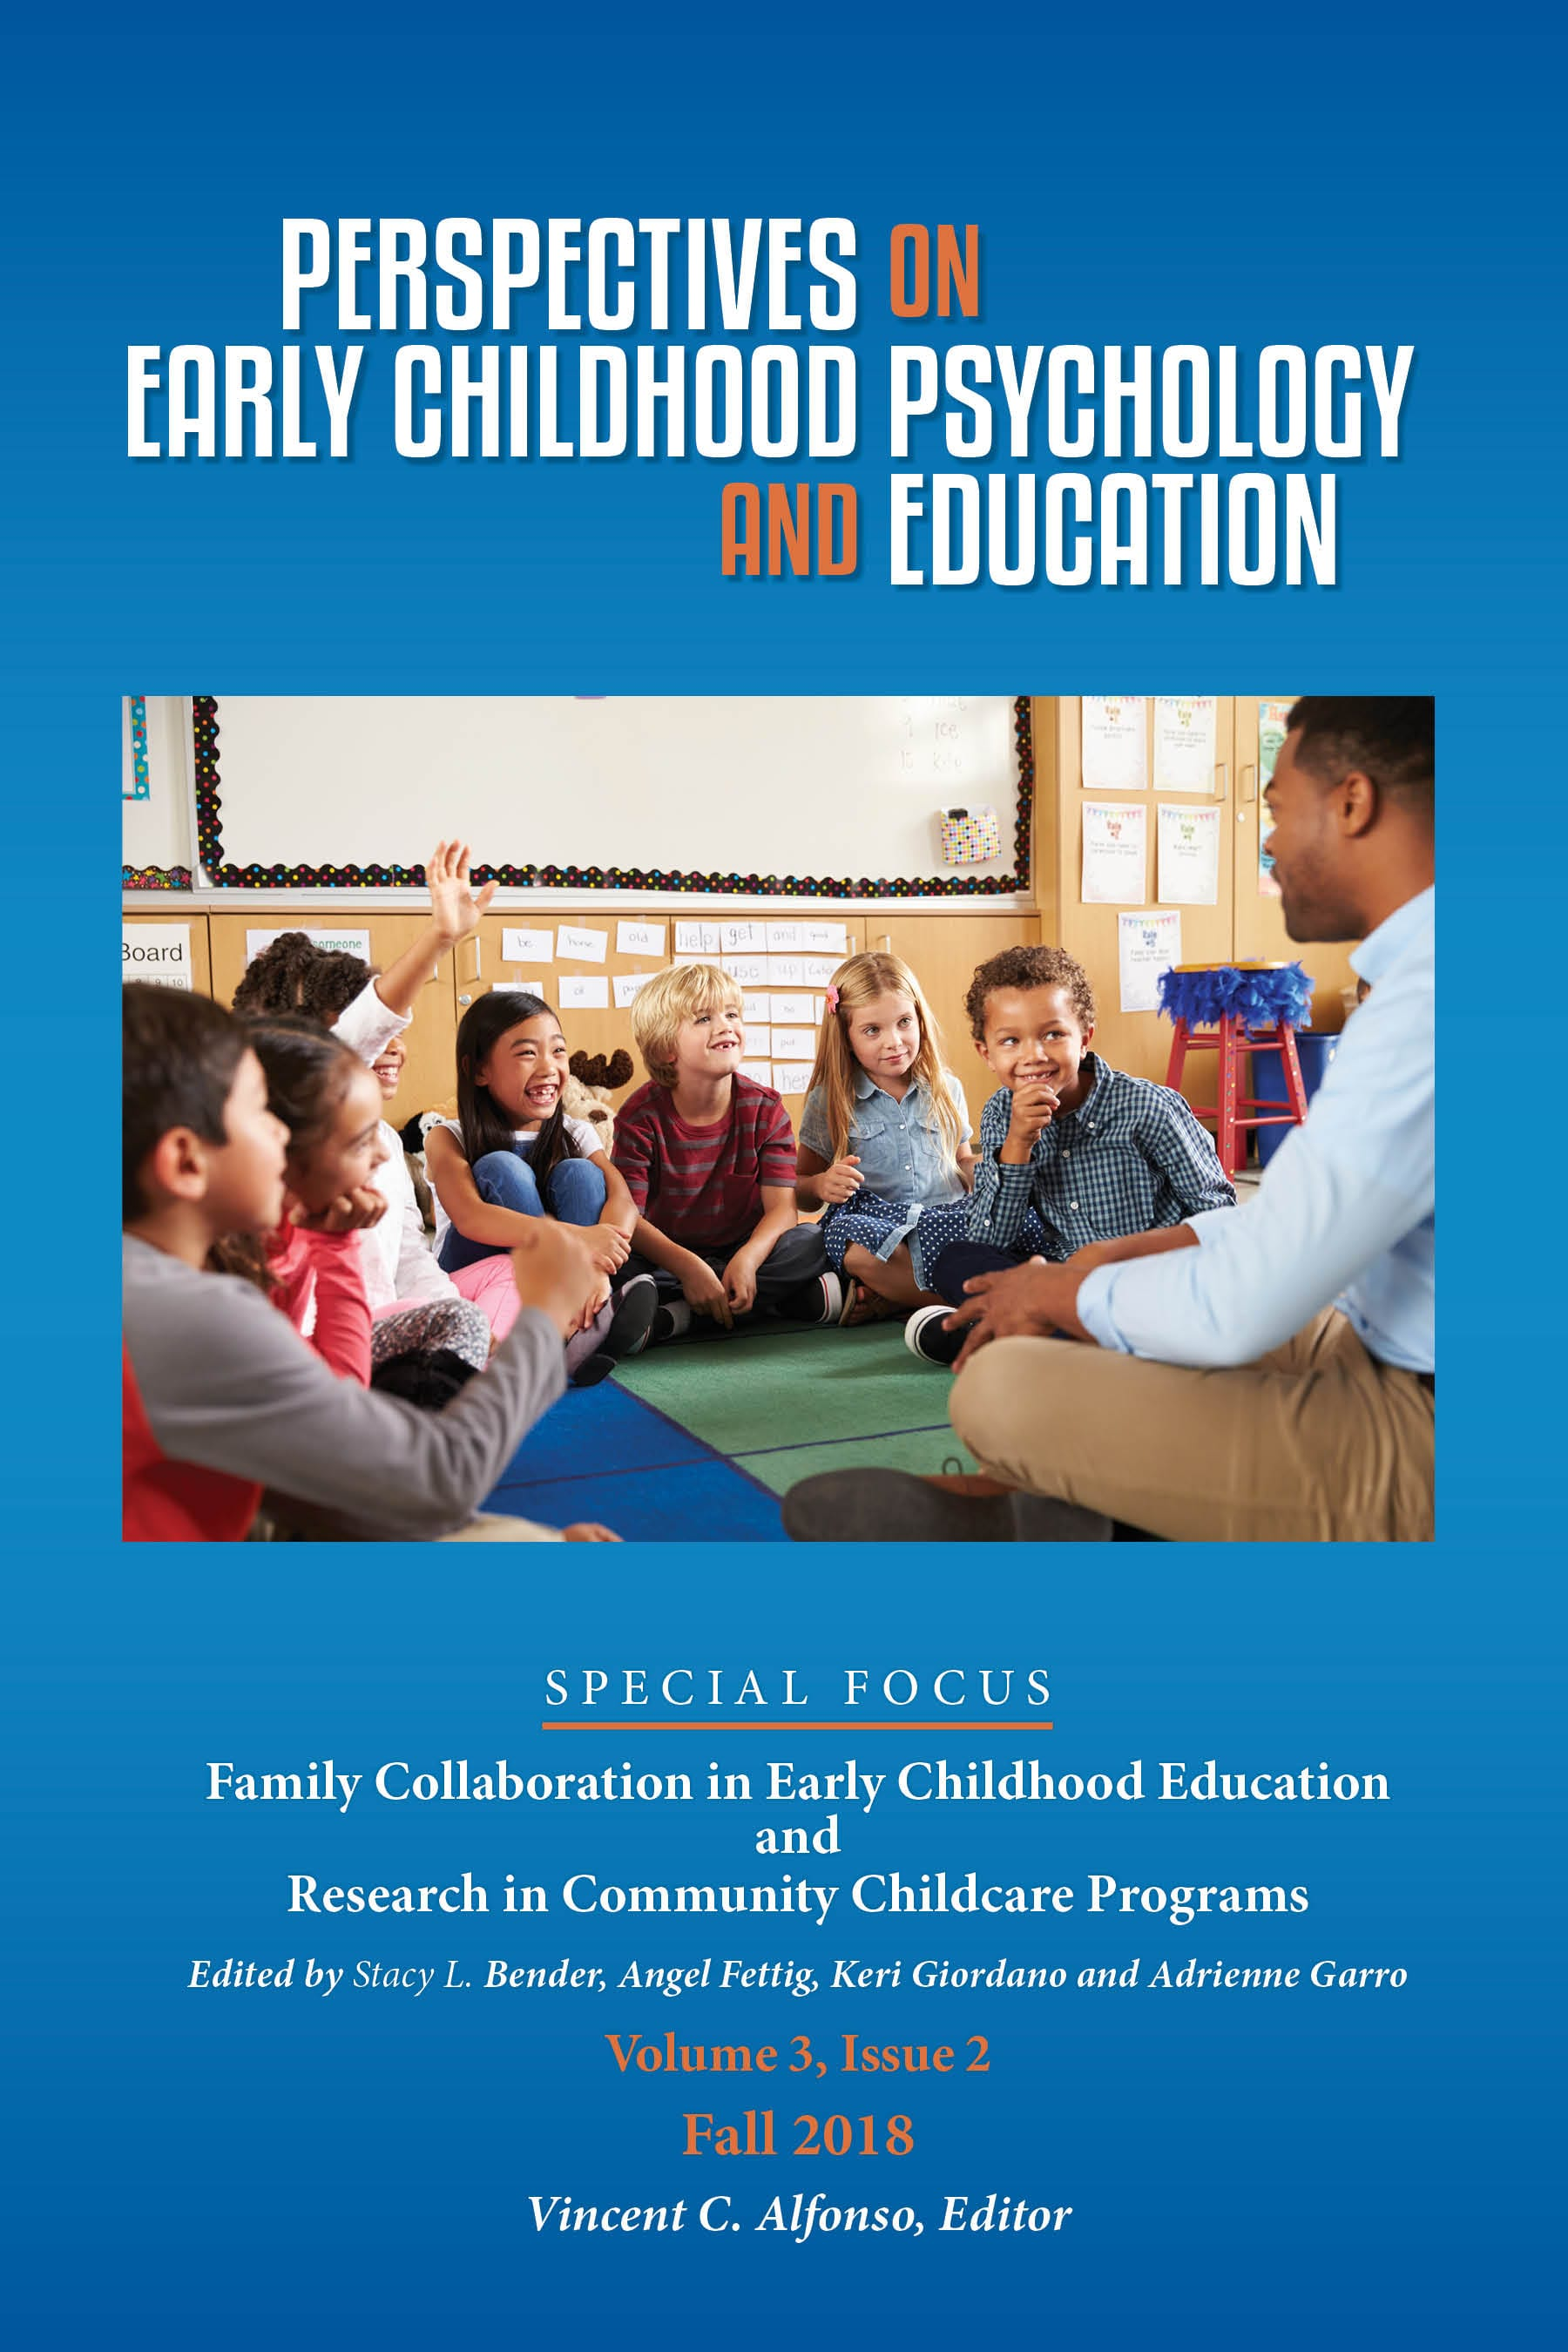 Perspectives On Tarot: Perspectives On Early Childhood Psychology And Education